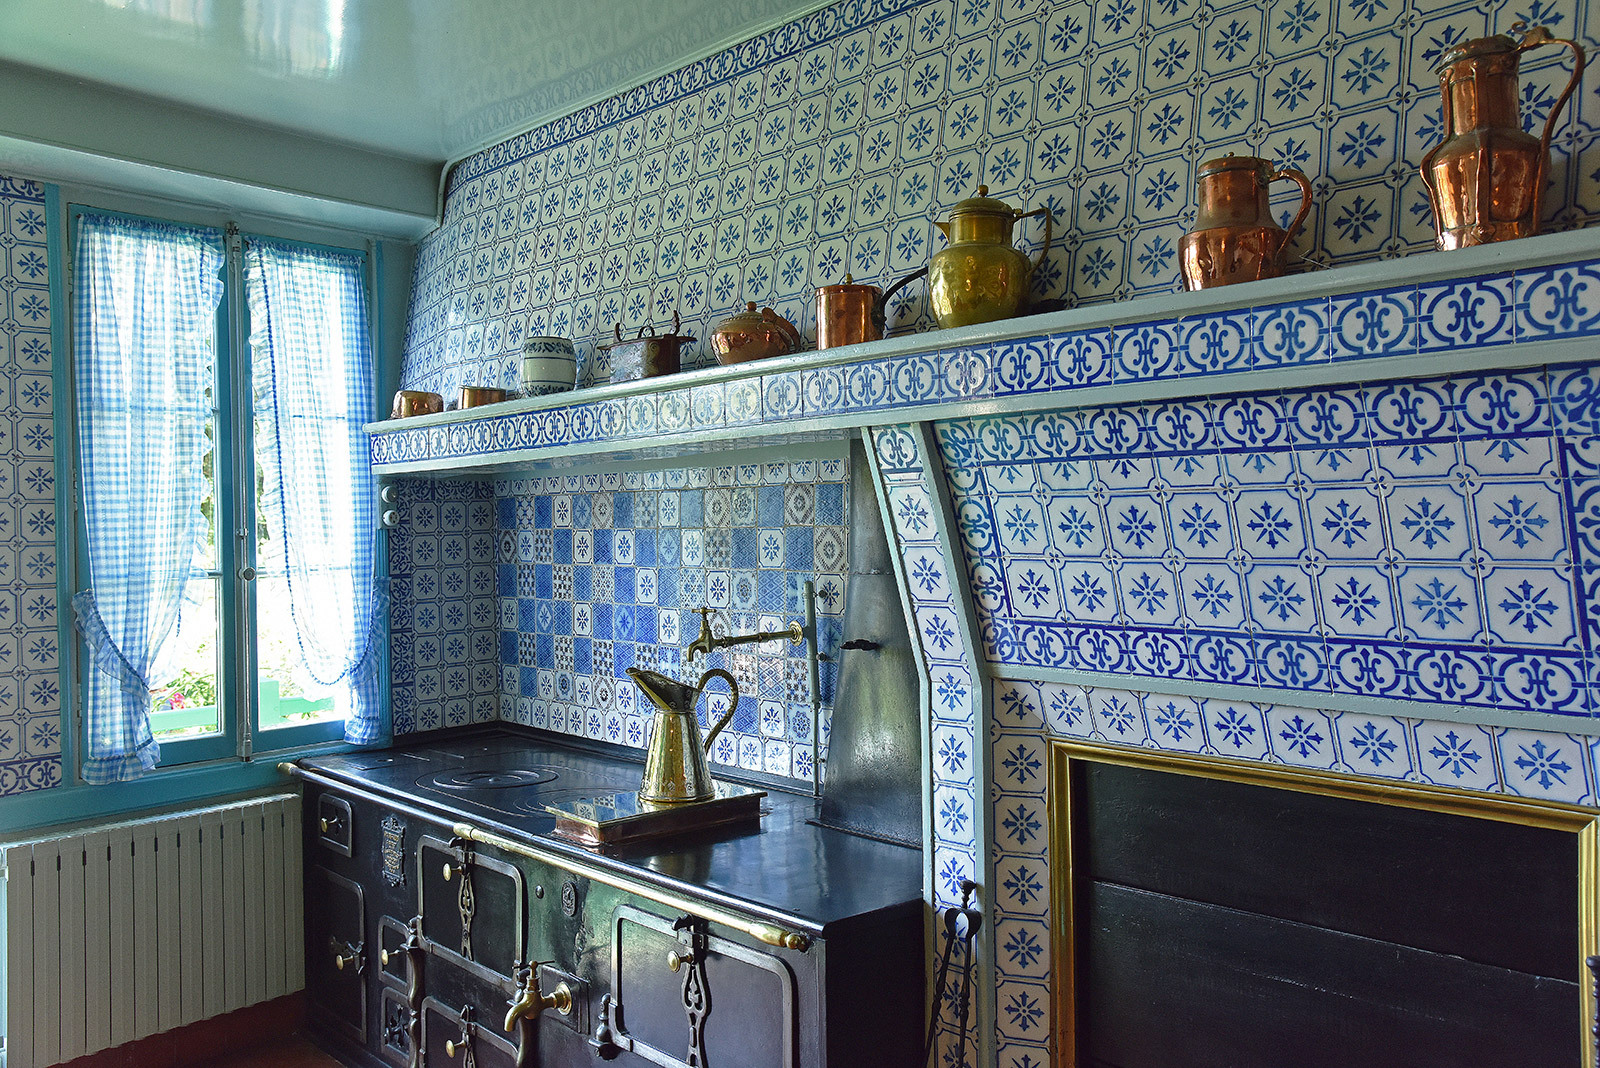 Artists homes you can visit: Monet's kitchen